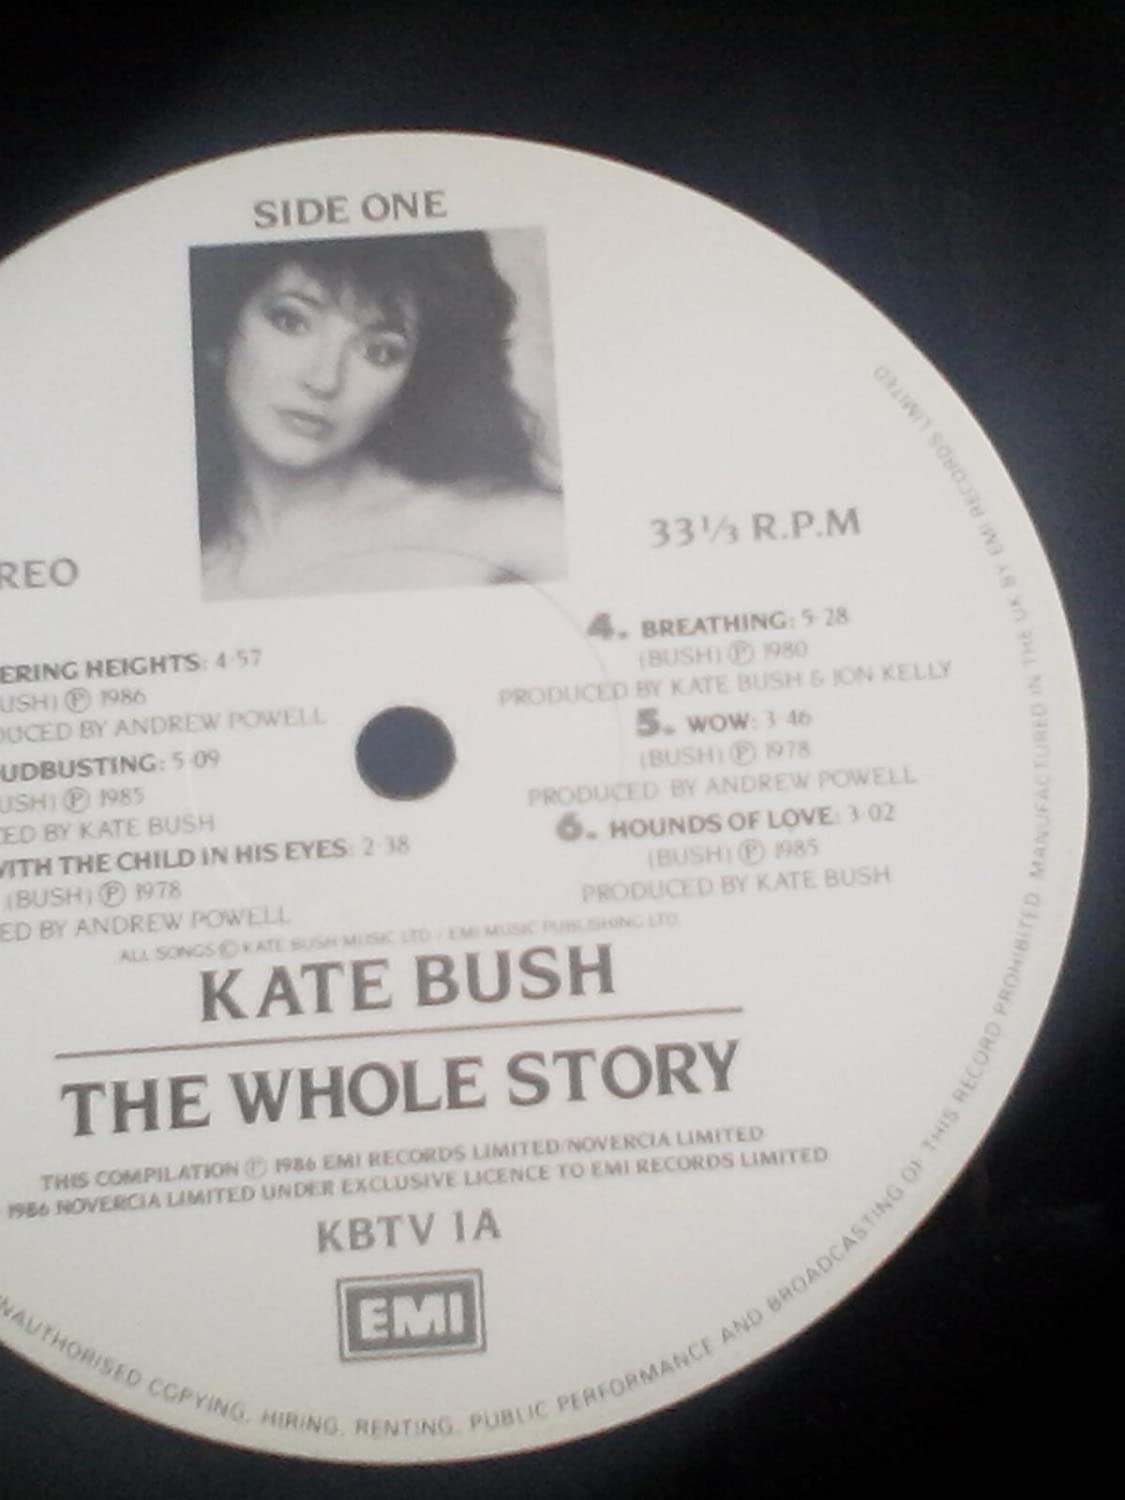 Unknown - THE WHOLE STORY VINYL LP [KBTV1]1986 KATE BUSH